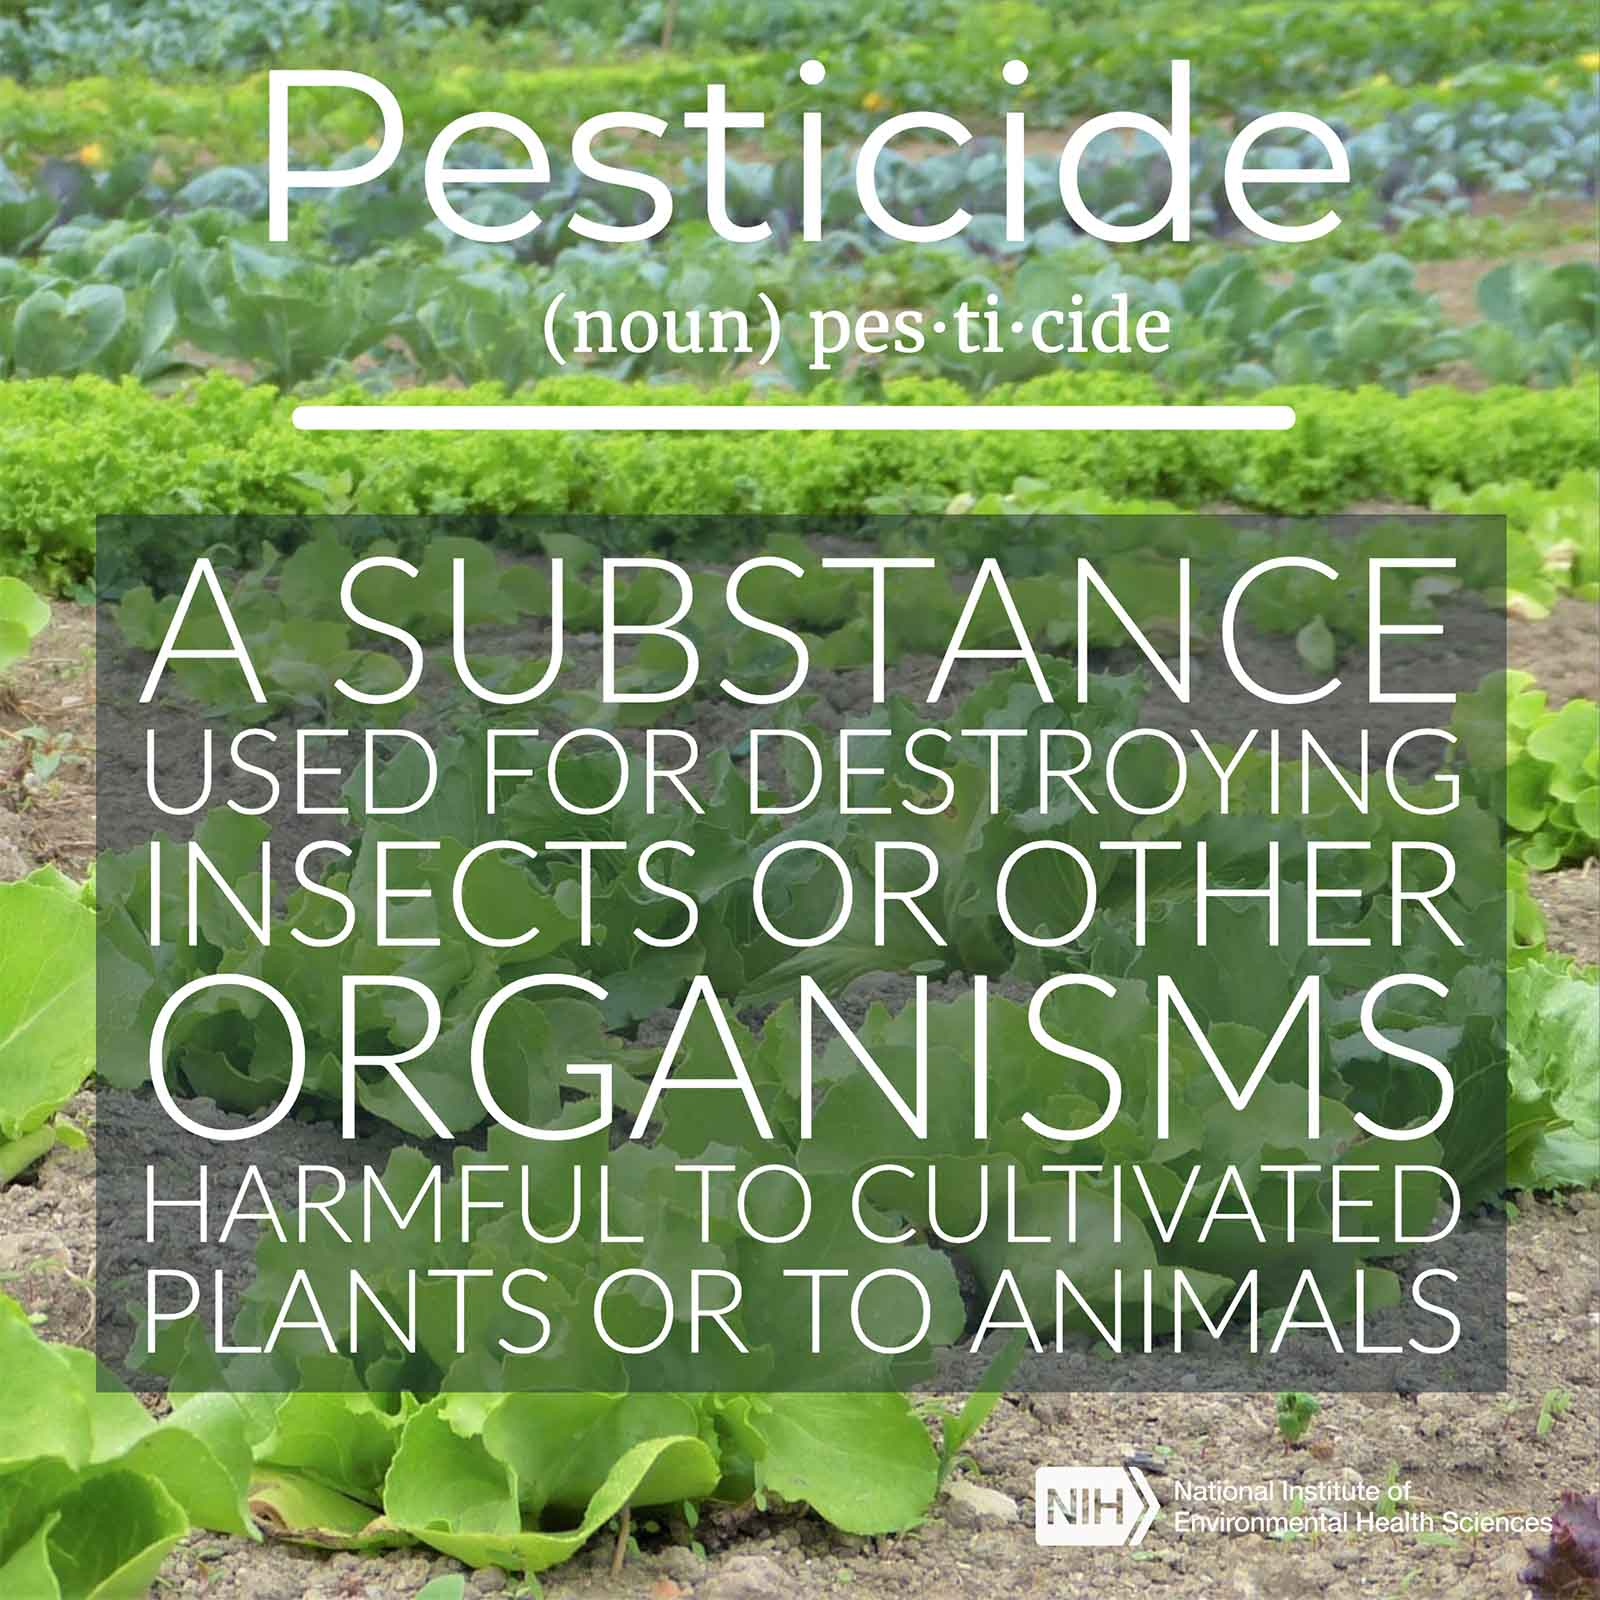 Pesticide (noun) described as a substance used for destroying insects or other organisms harmful to cultivated plants or to animals